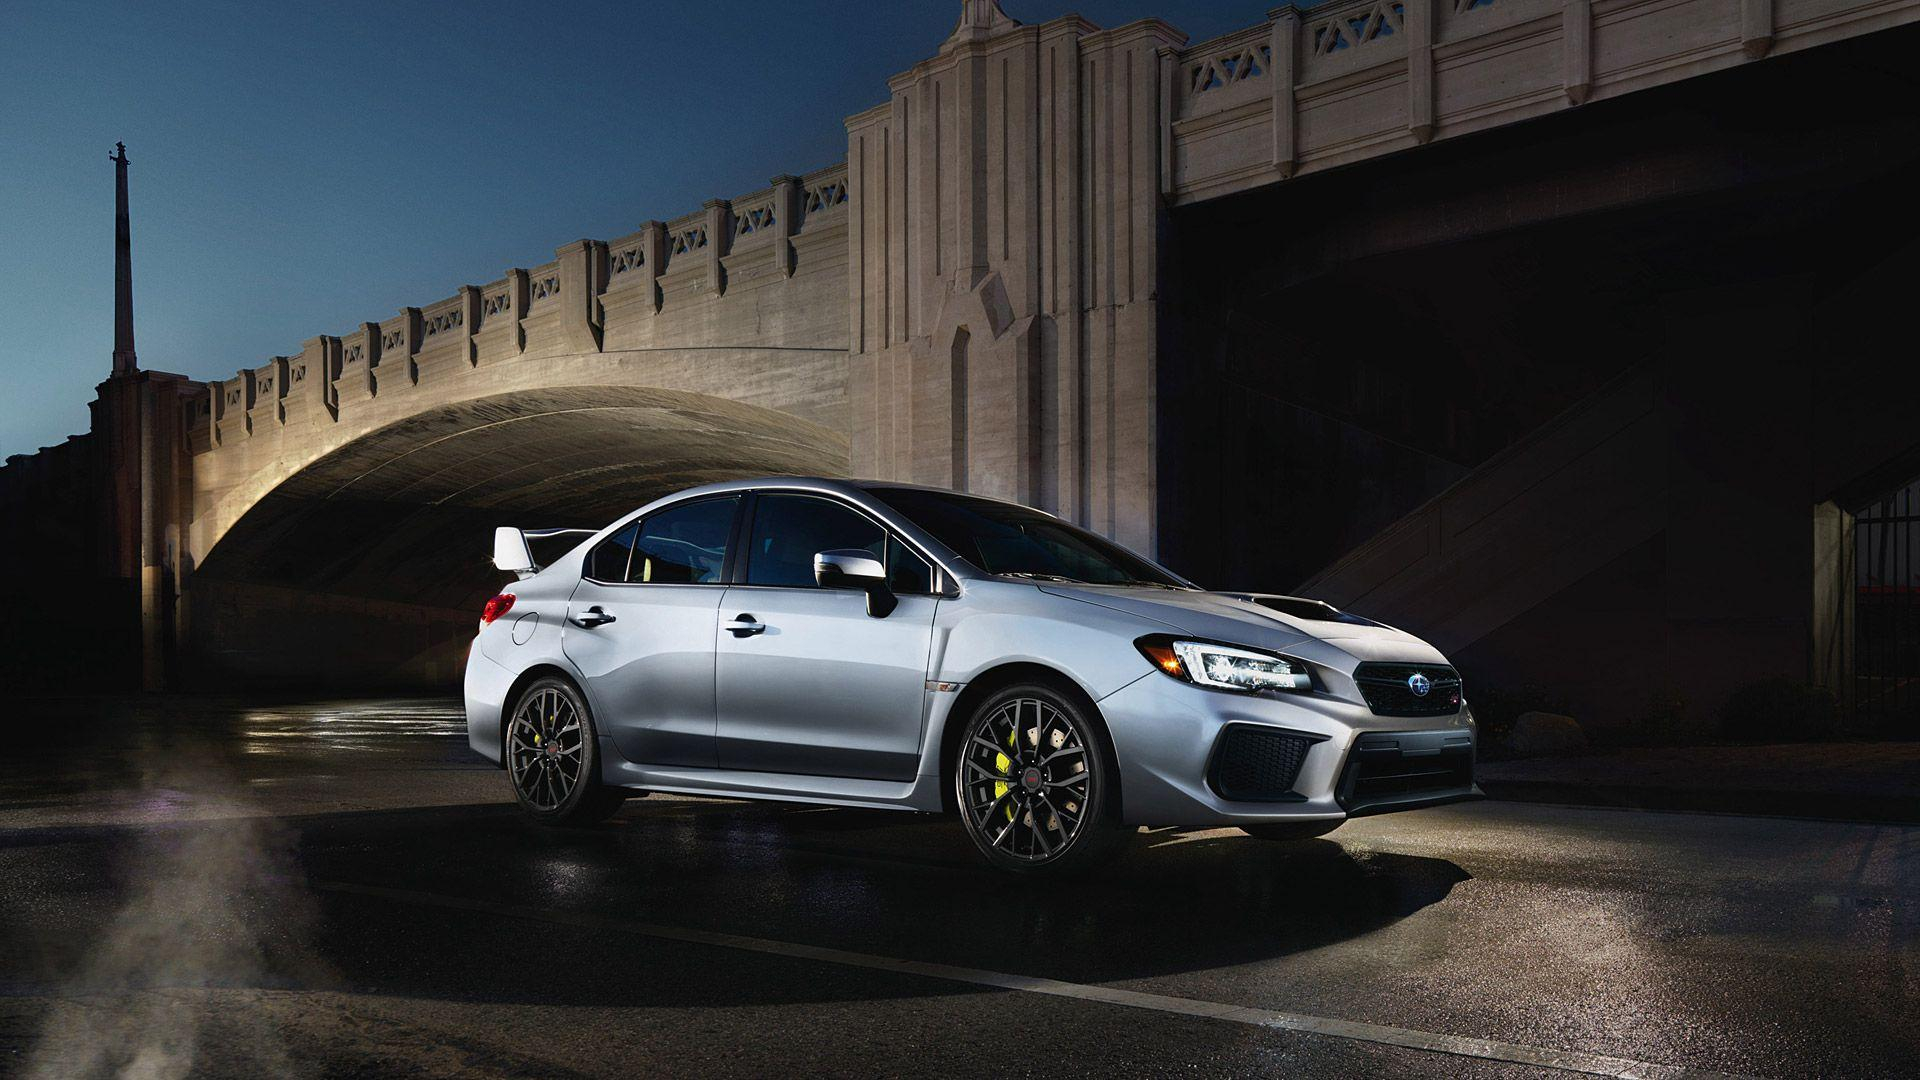 2018 Subaru WRX STI Wallpapers & HD Images - WSupercars